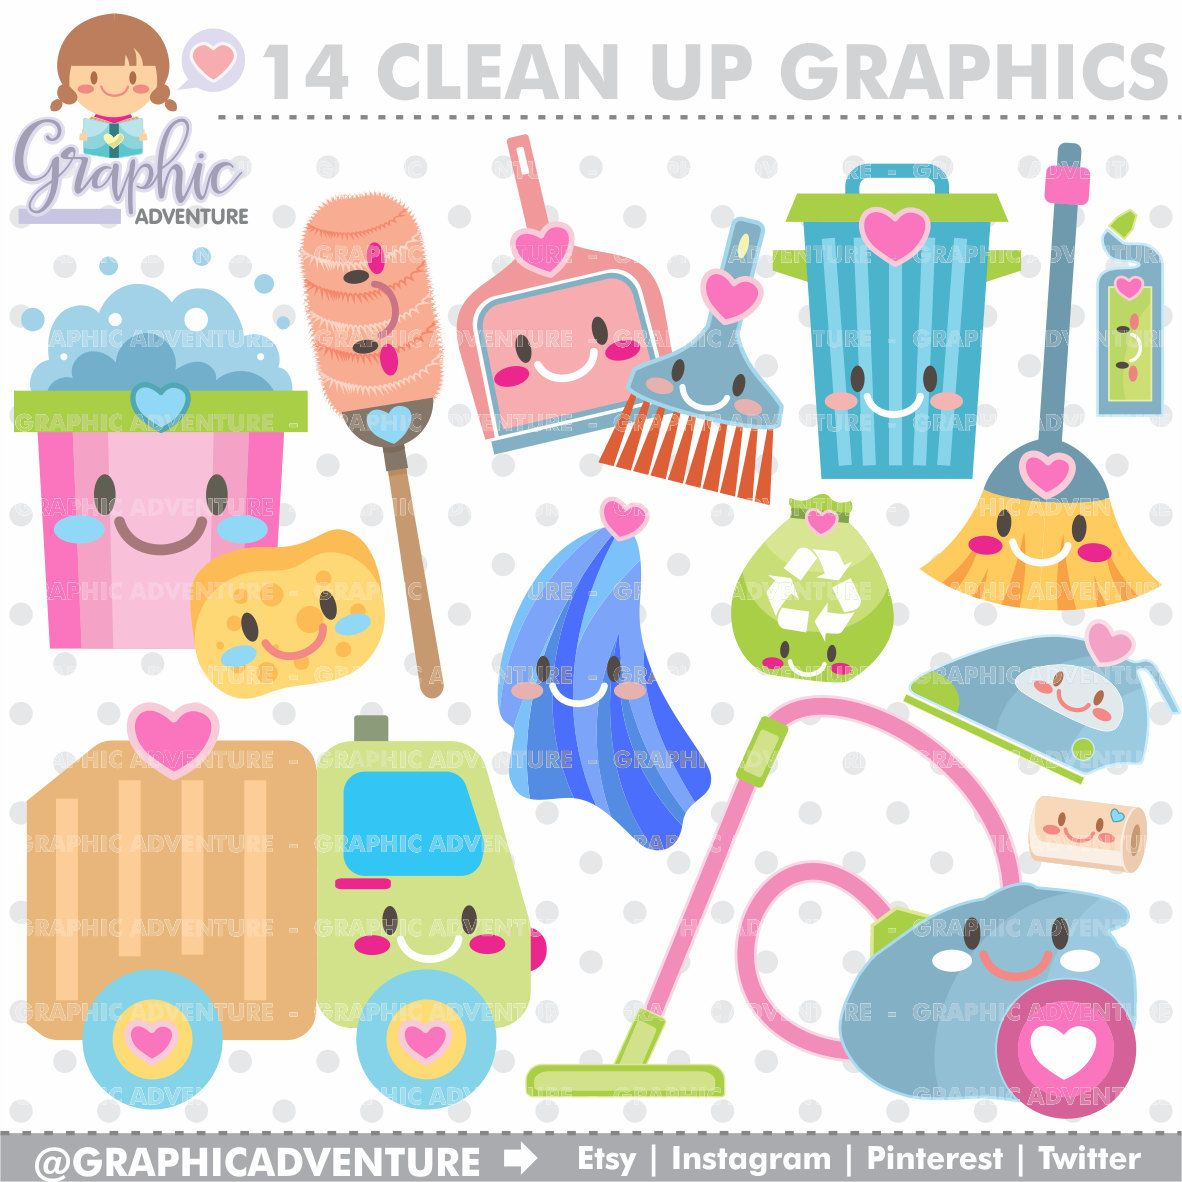 75 off clean up clipart clean up graphics commercial use kawaii clipart chore clipart planner accessories housekeeping organizing [ 1182 x 1182 Pixel ]